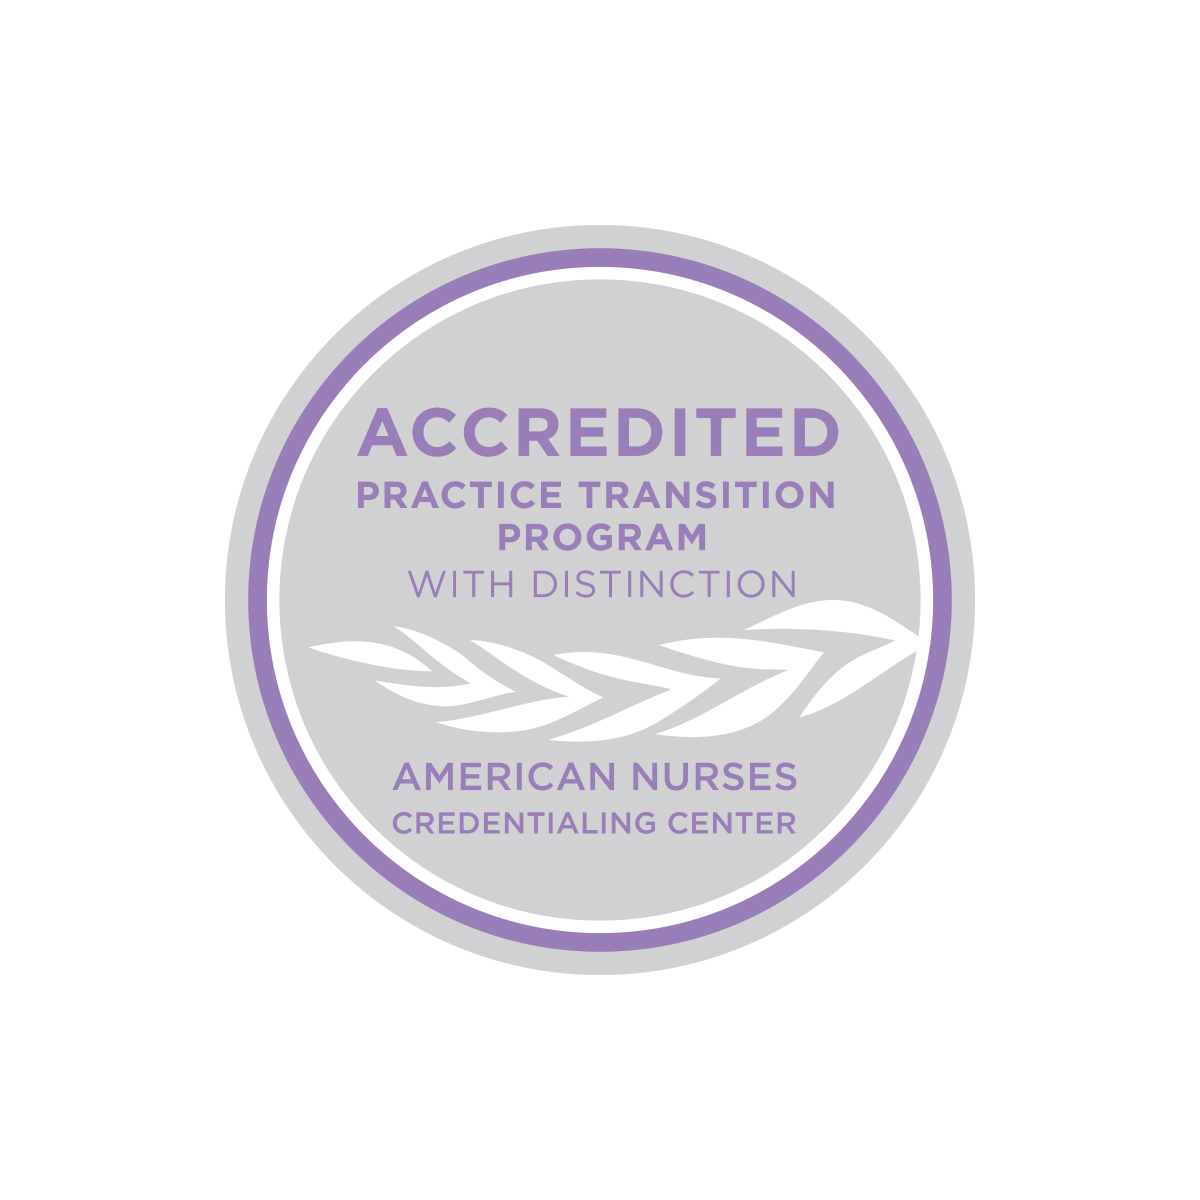 Accredited Practice Transition Program with Distinction lapel pin